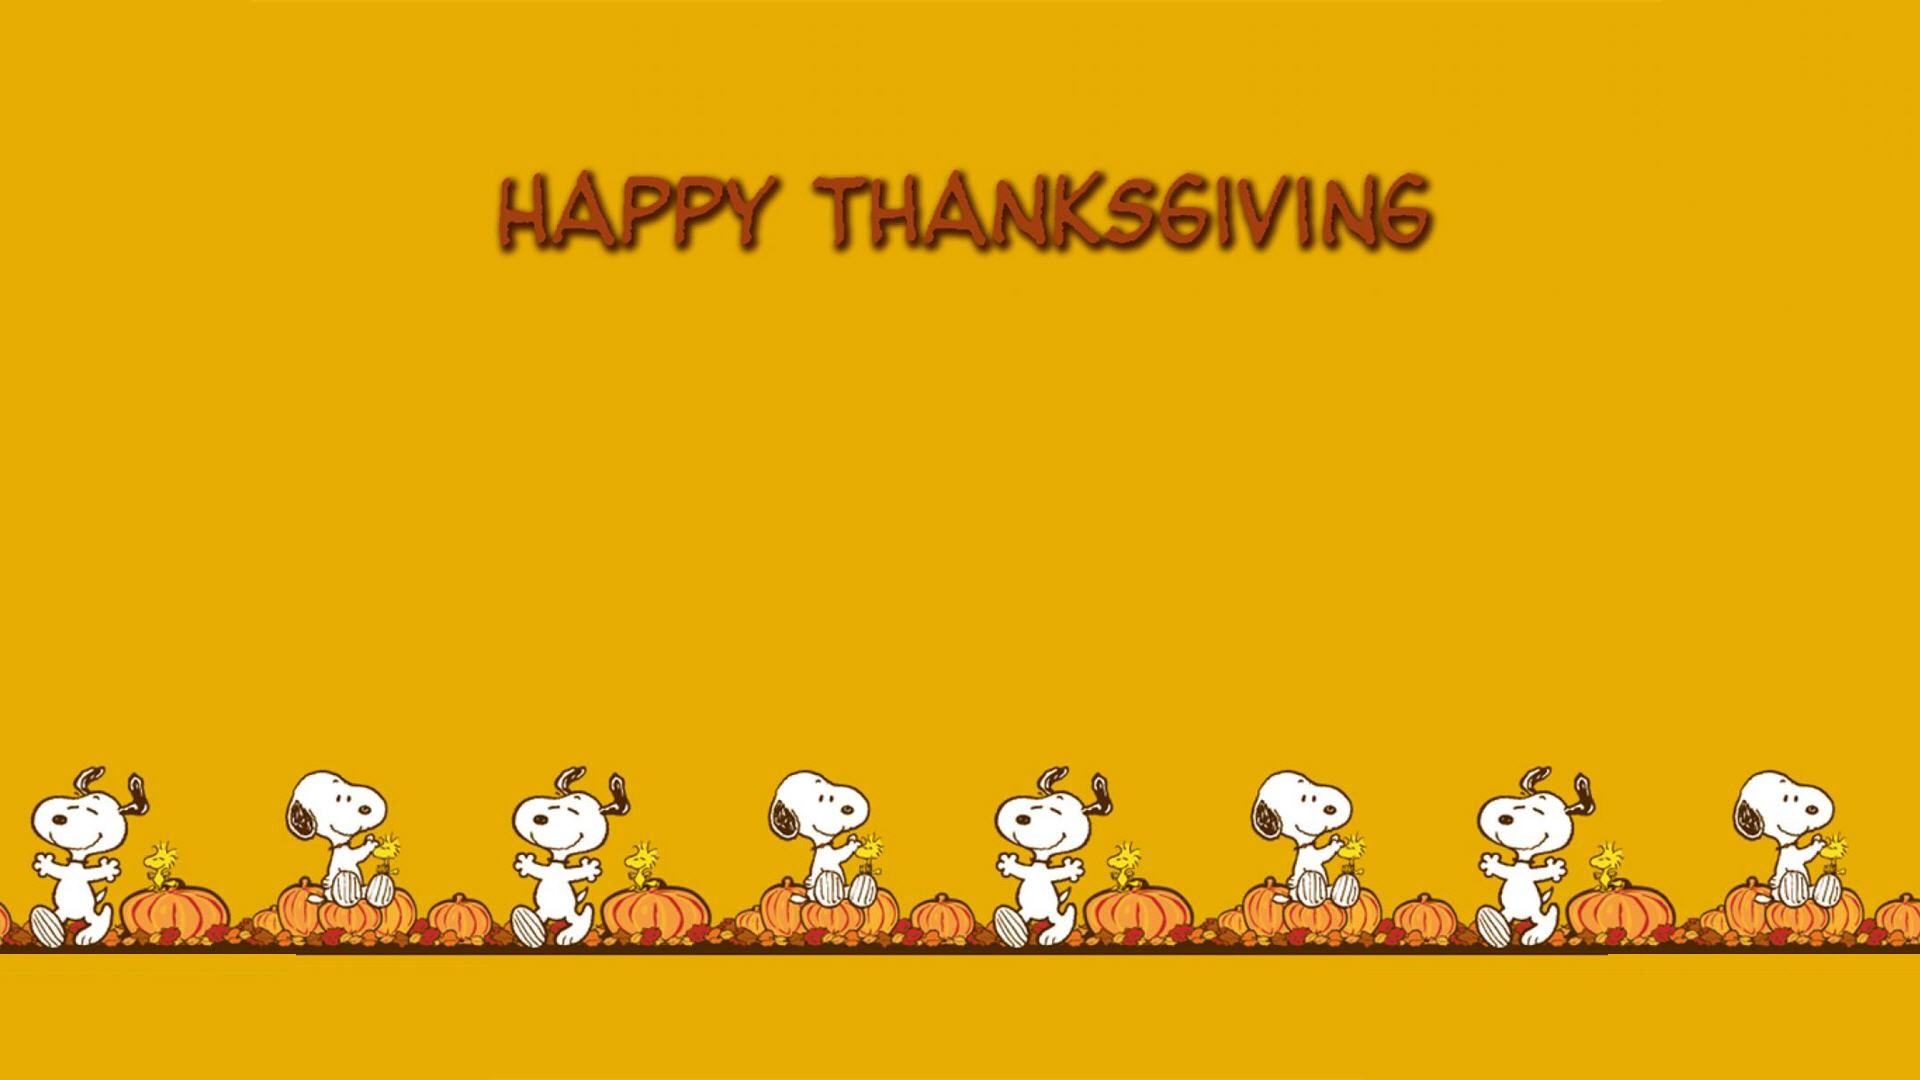 Snoopy Thanksgiving Wallpaper Backgrounds Widescreen 1920x1080